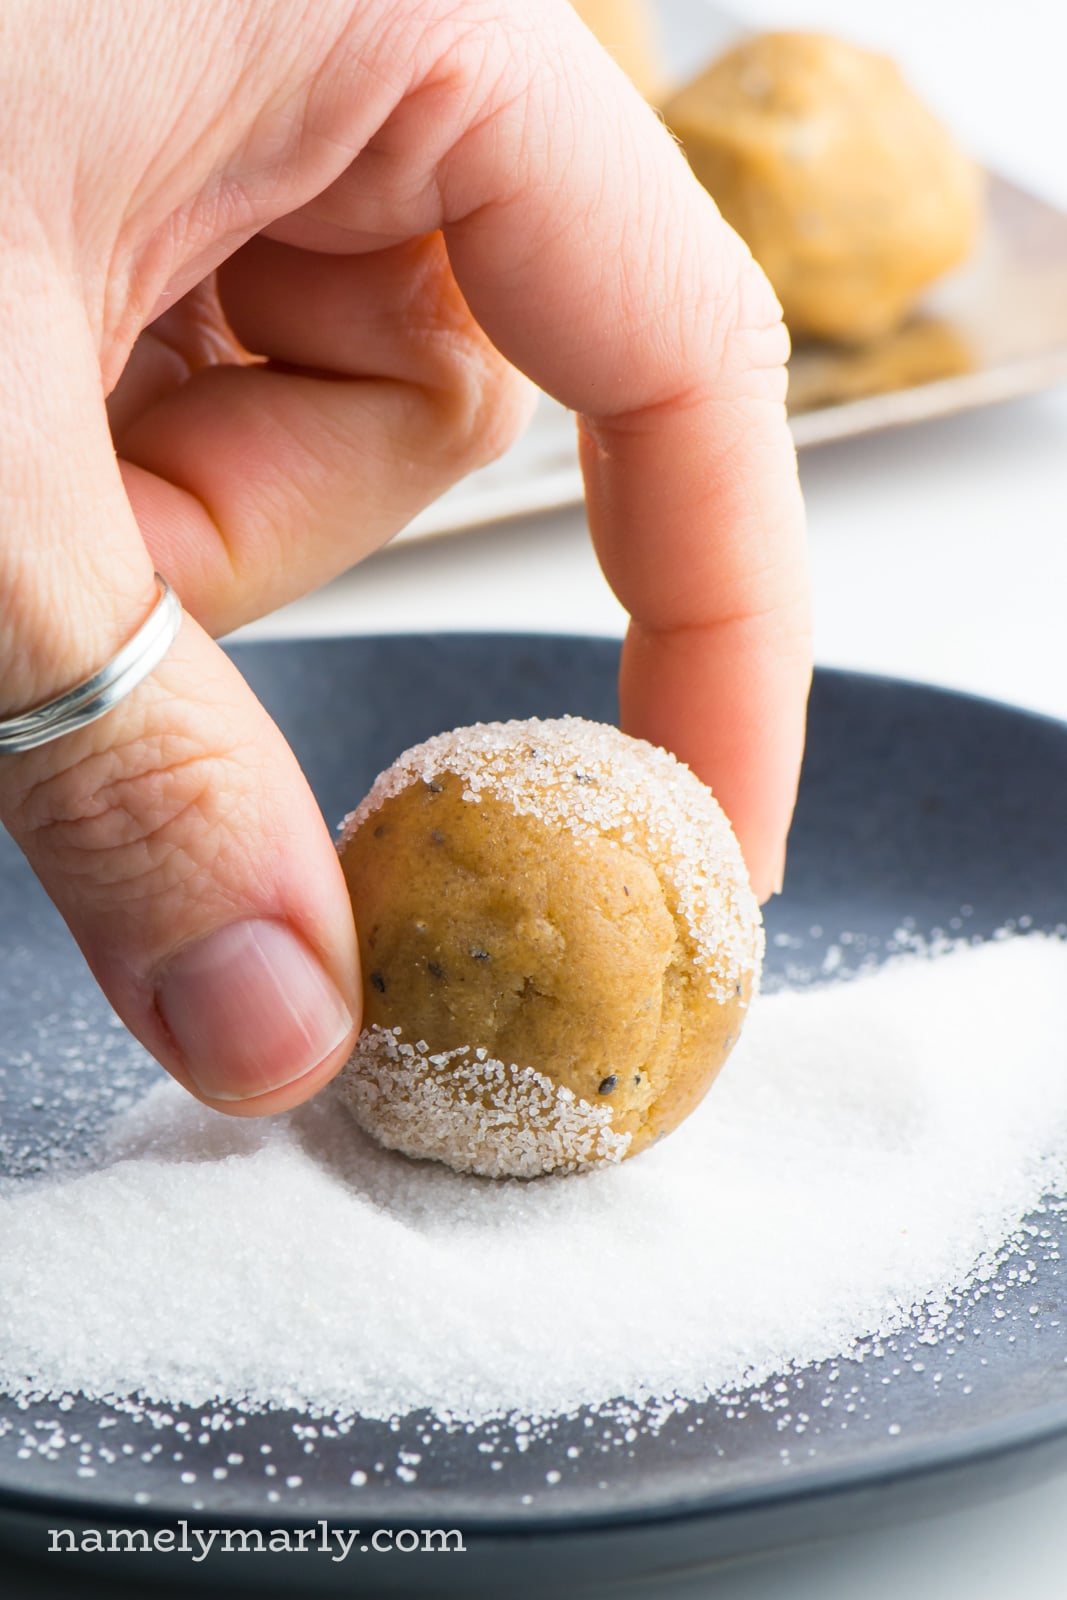 A hand is holding a vegan peanut butter cookie dough ball over a plate of sugar. The cookie dough ball has been partially rolled in the sugar.